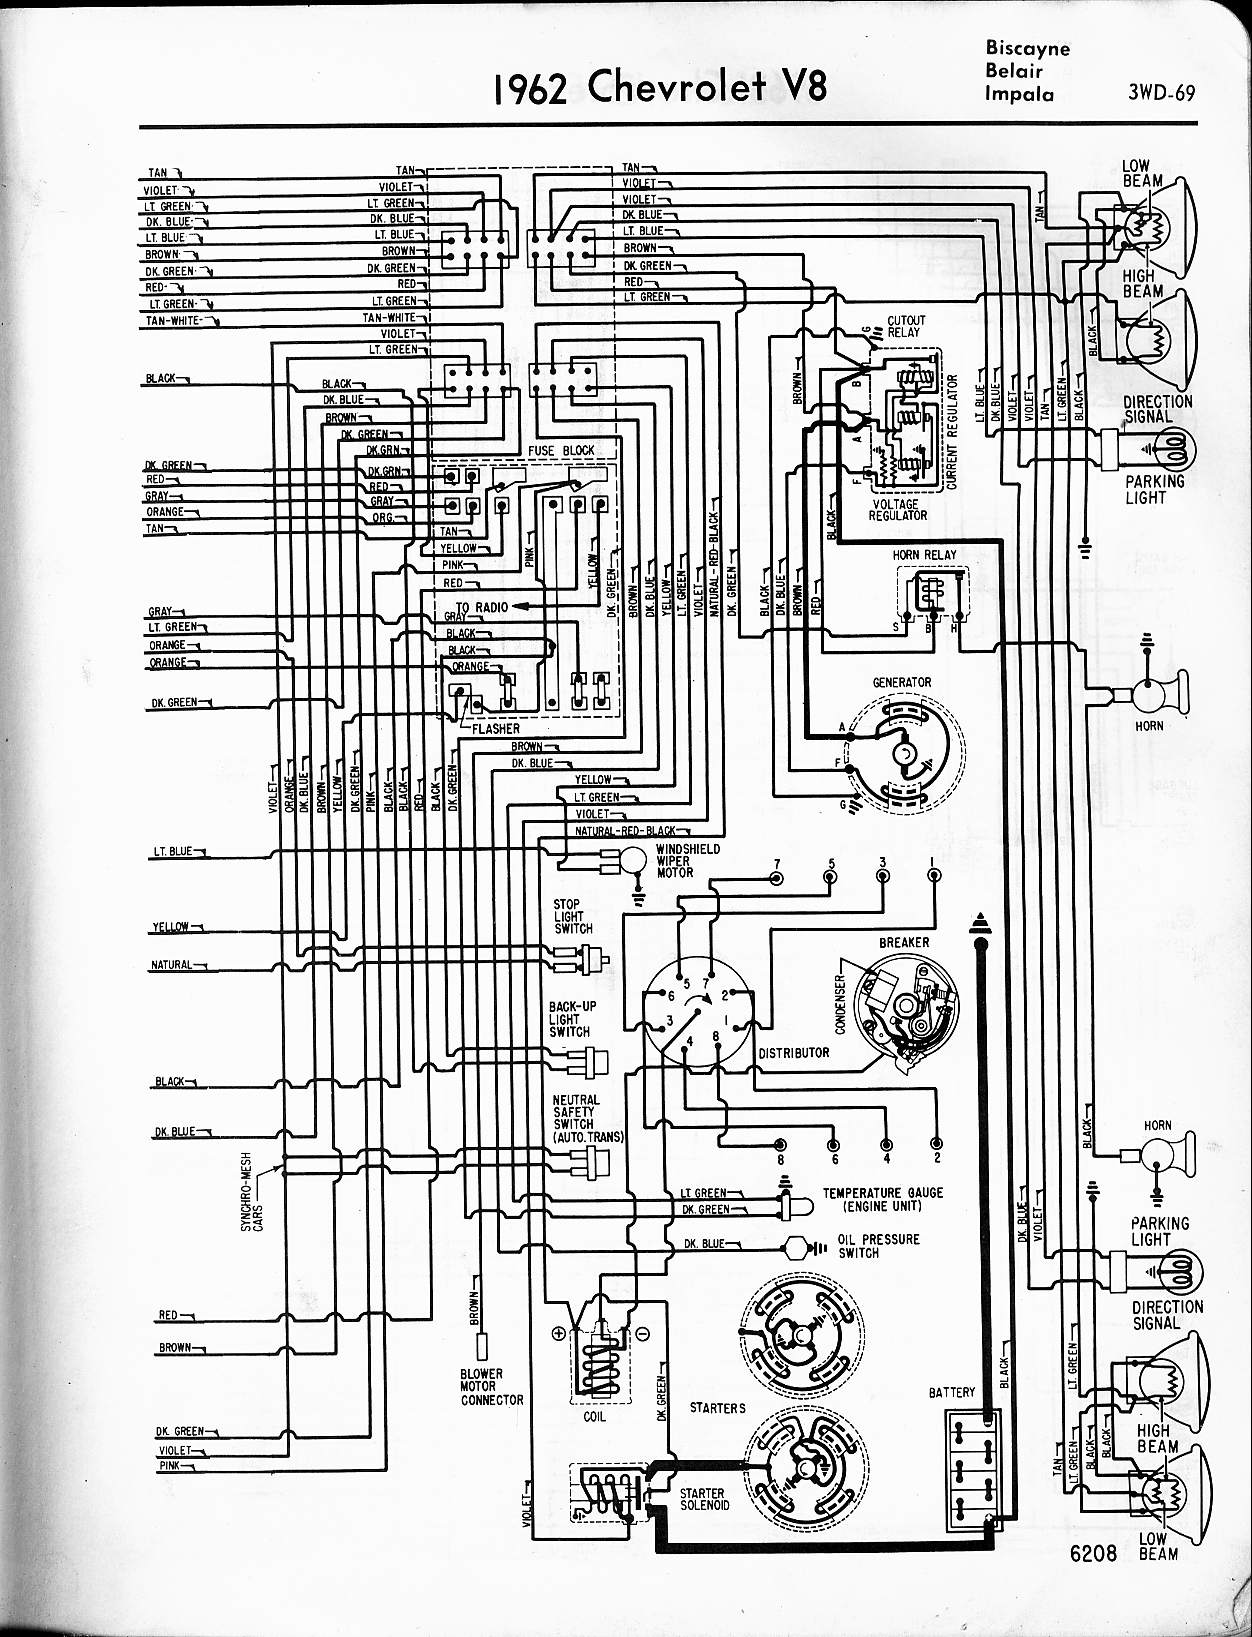 MWireChev62_3WD 069 1962 chevrolet wiring diagram manual chevytalk free 1965 corvair wiring diagram at nearapp.co